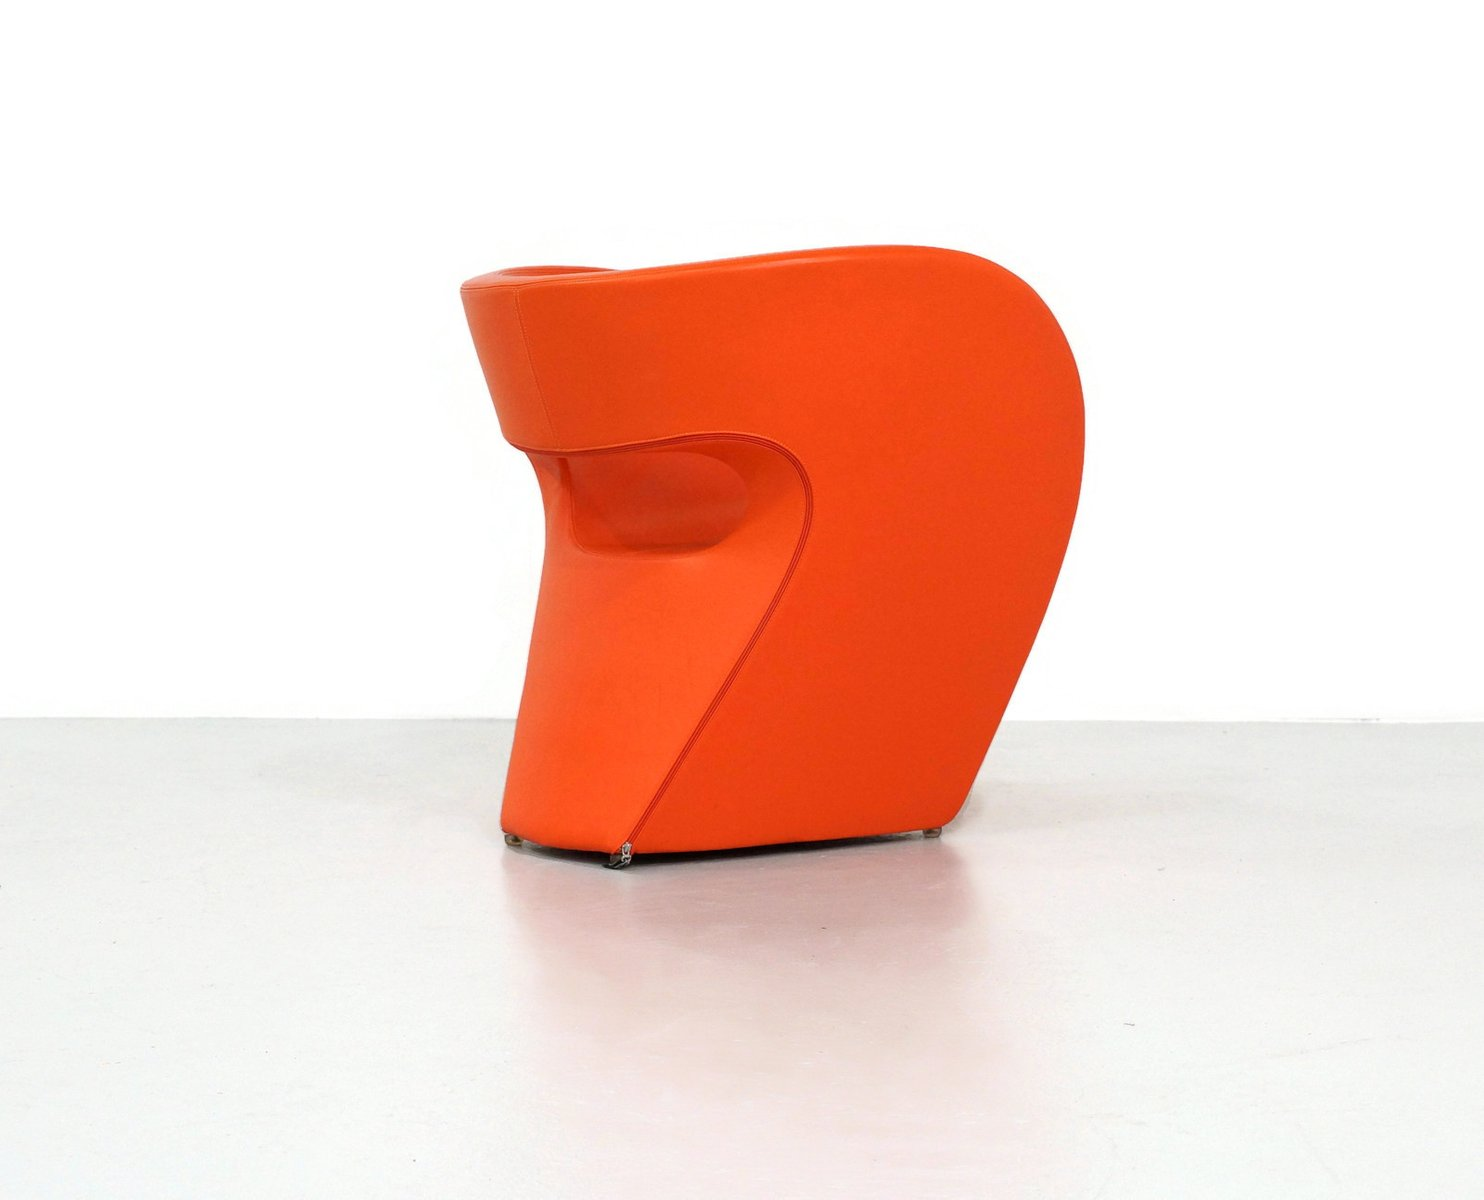 Orange Leather Victoria Amp Albert Chair By Ron Arad For